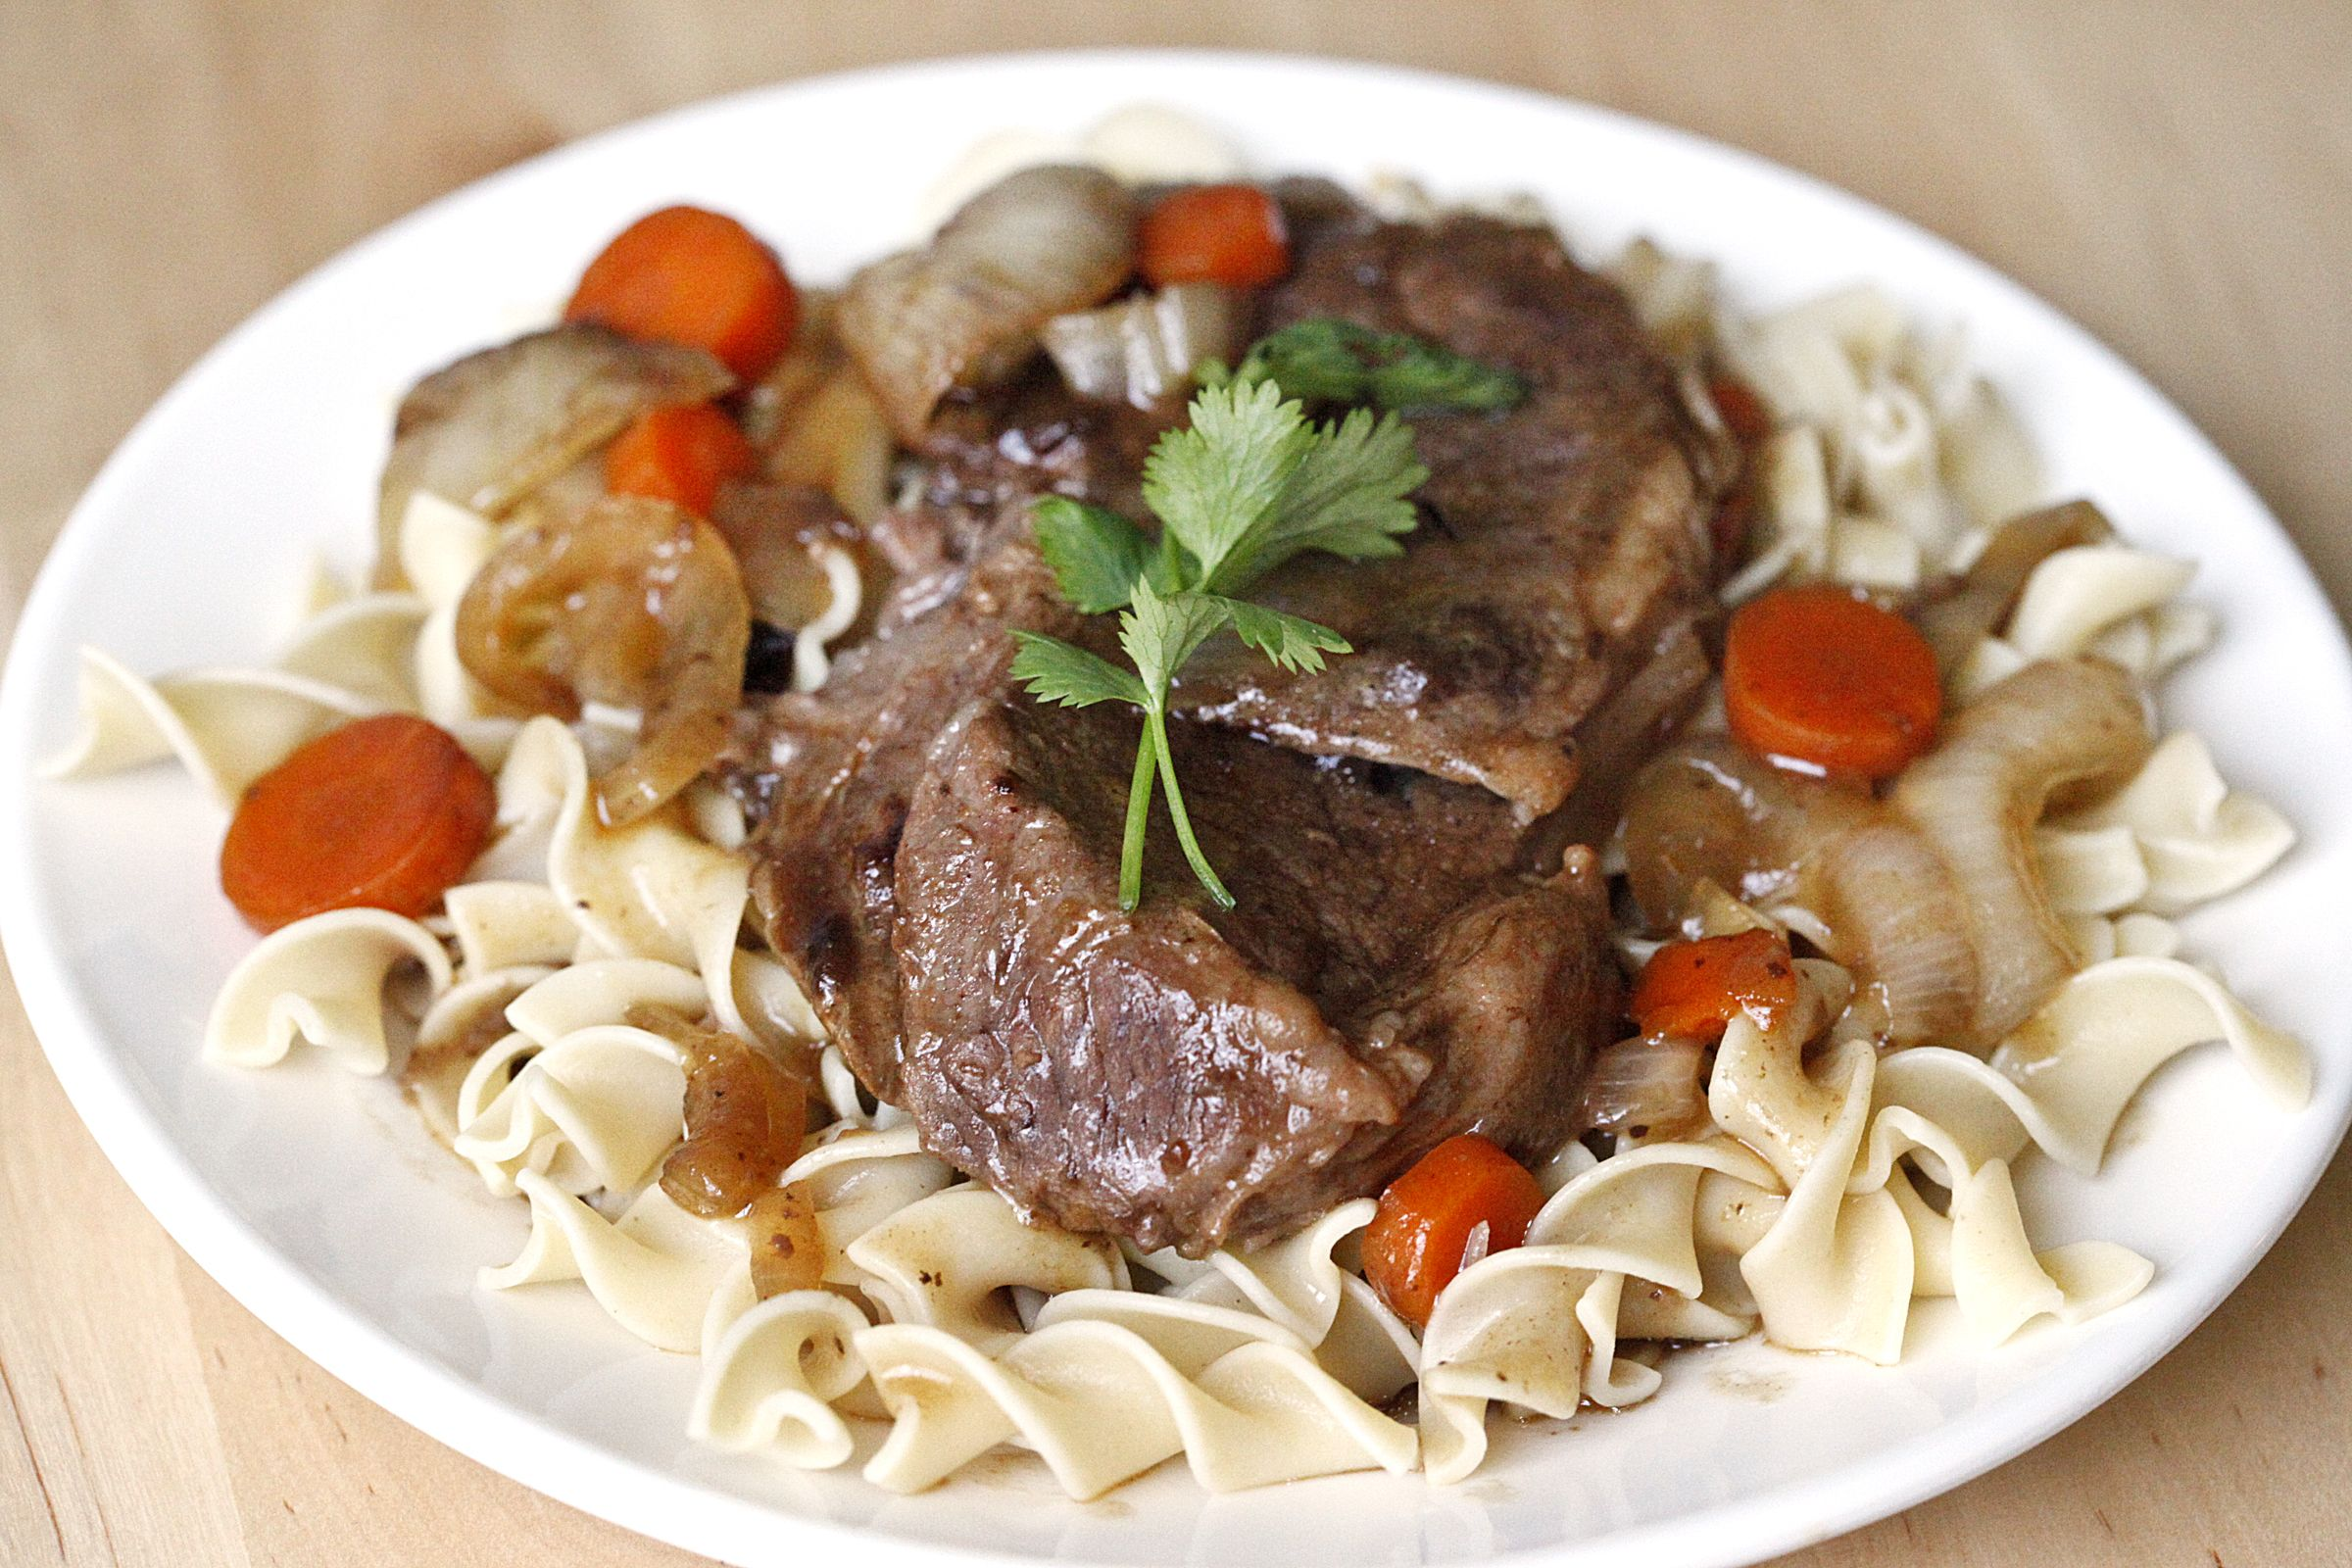 Just five minutes of prep makes this delicious Crockpot Roast Beef: http://ow.ly/cBzpr #recipes